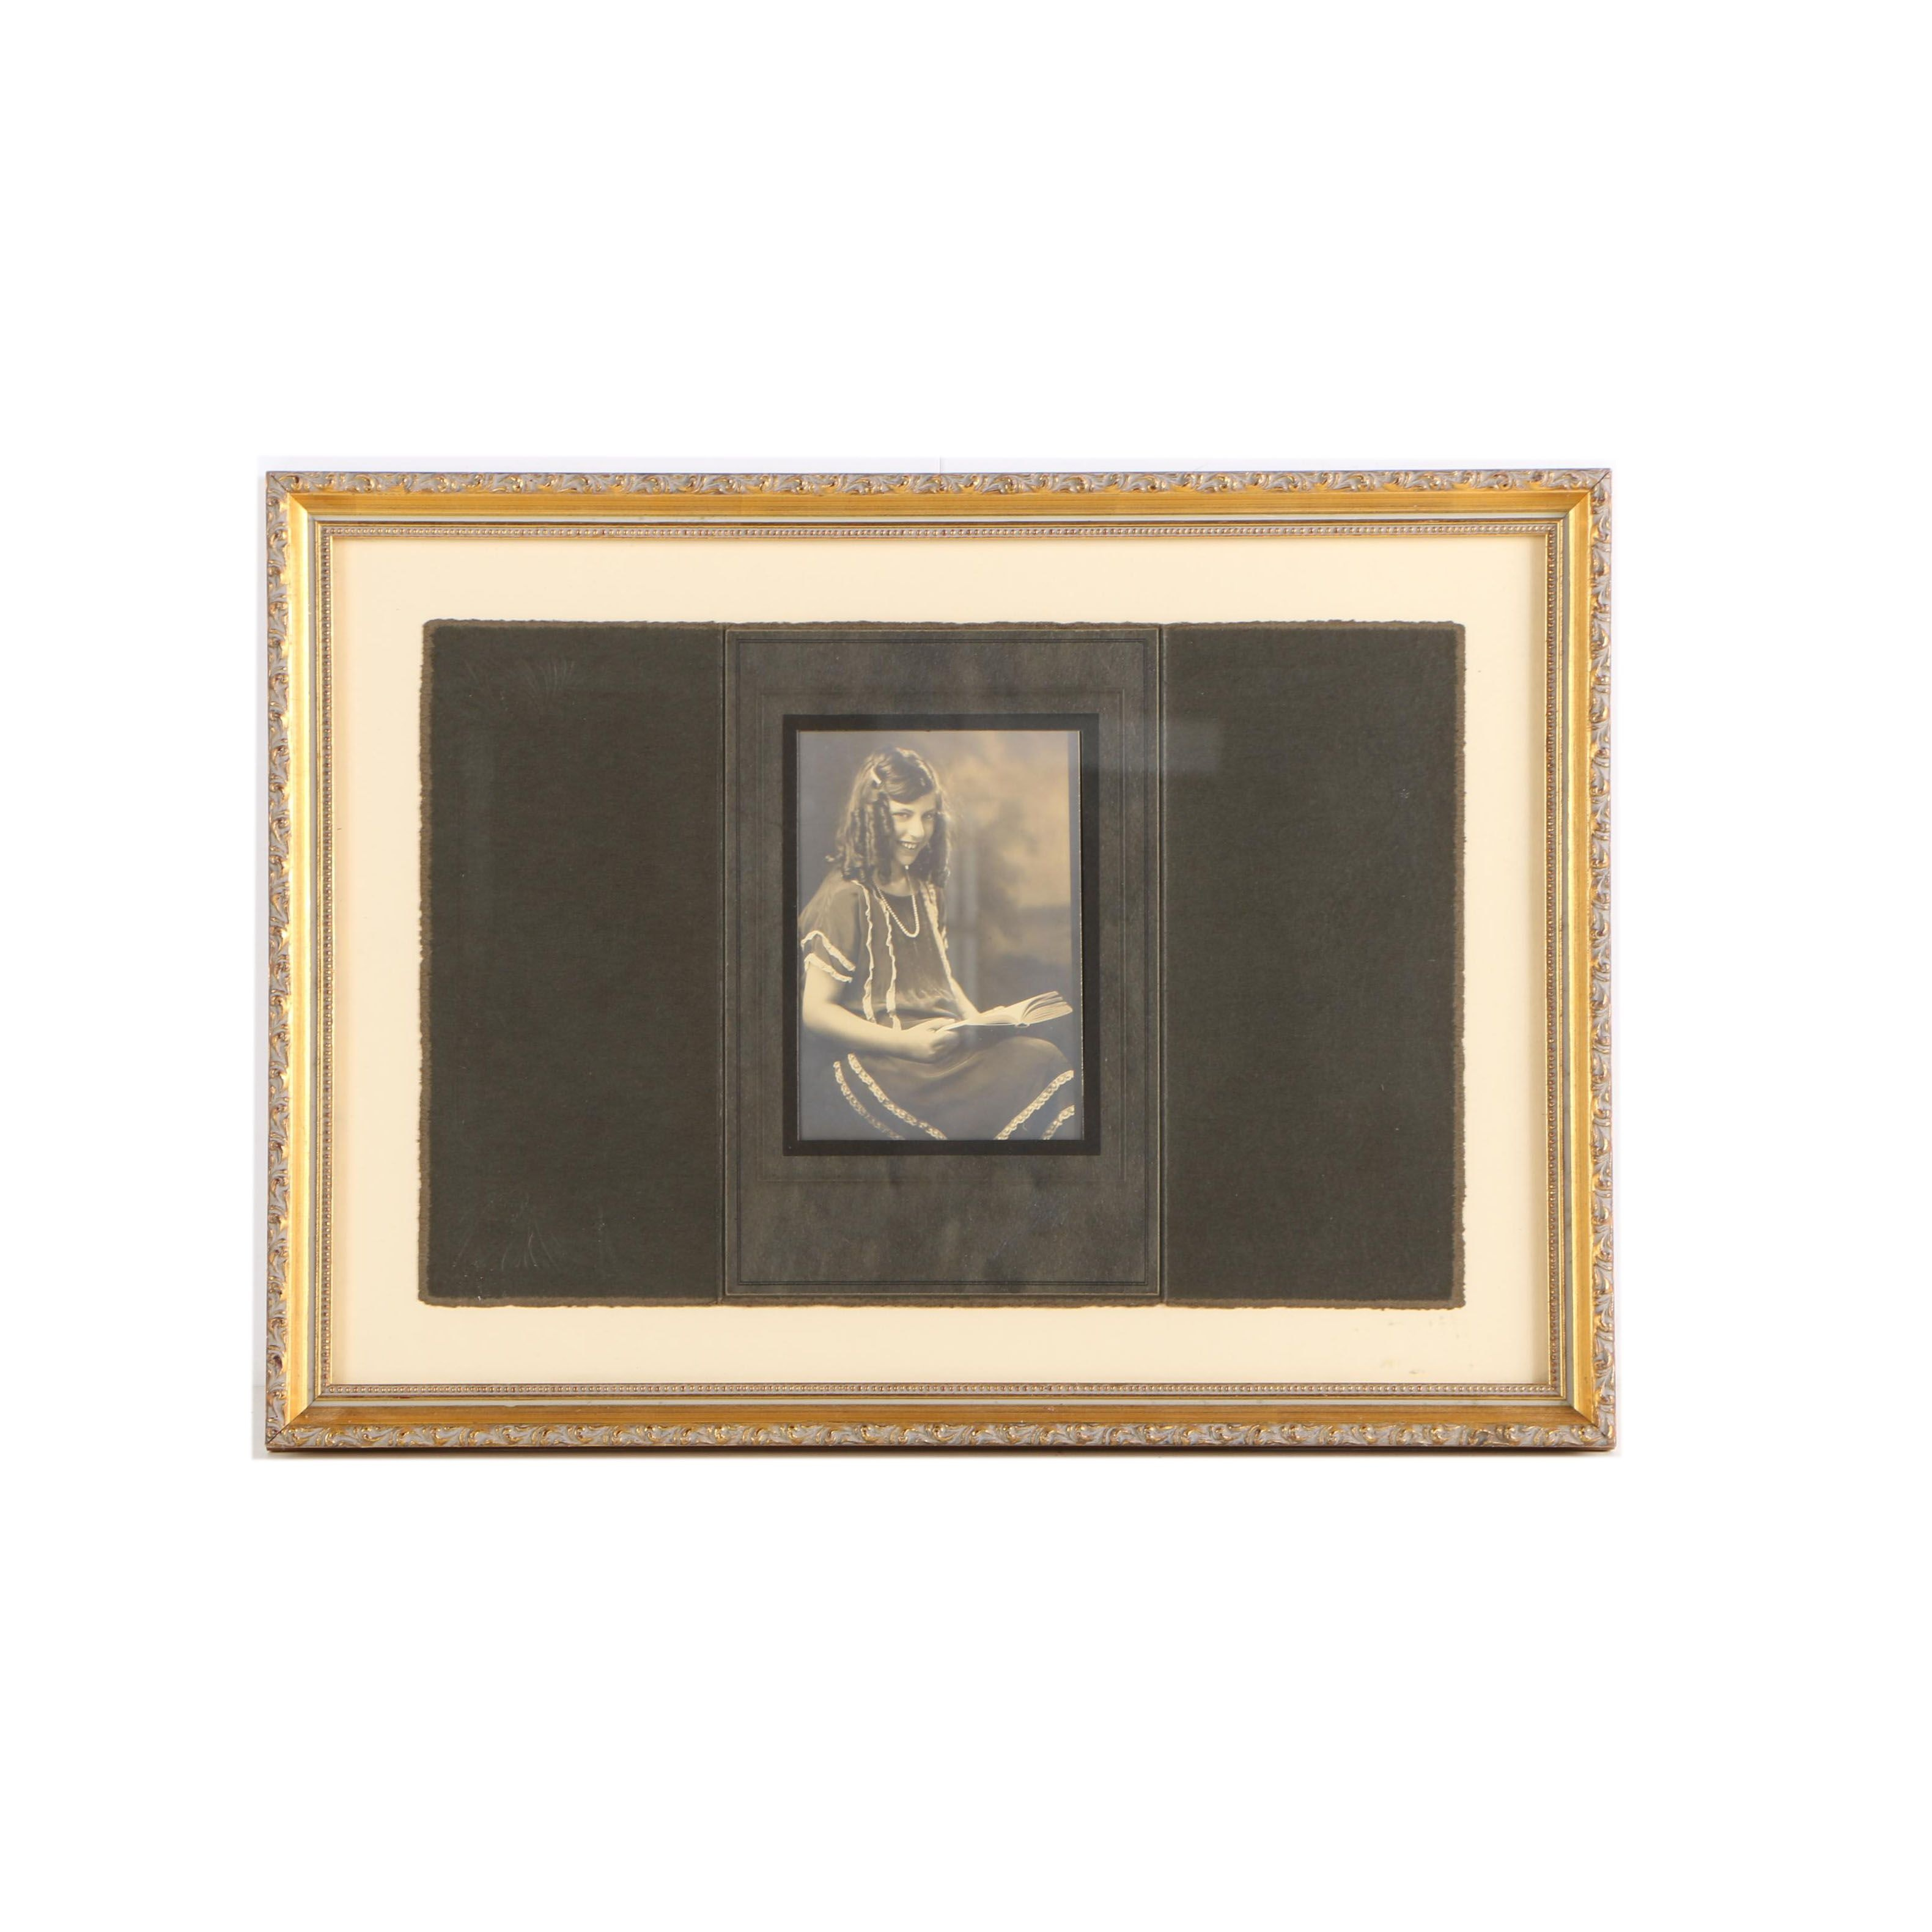 Signed Black and White Photograph on Paper in a Cabinet Card Held in Wood Frame